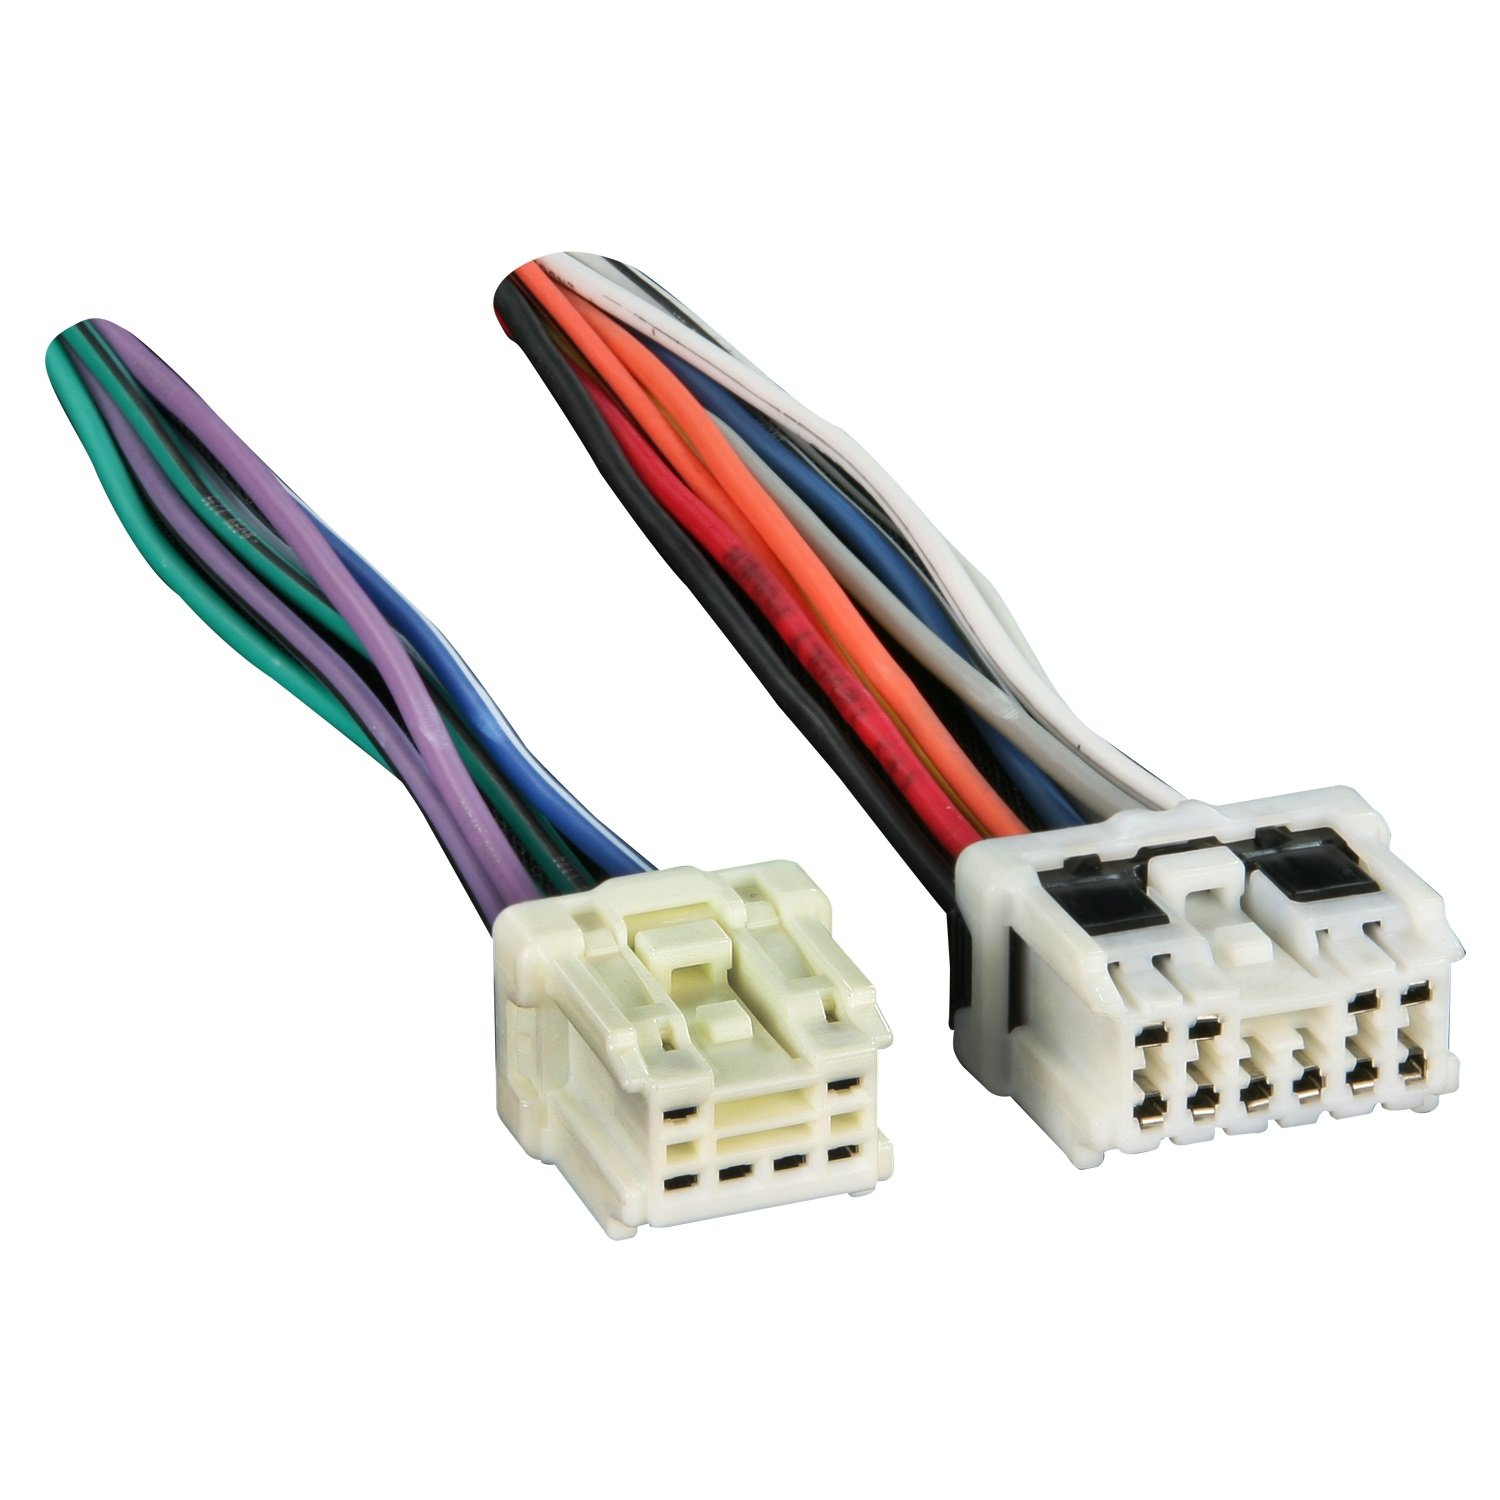 71zoJZaQUdL._SL1500_ amazon com metra reverse wiring harness 71 7550 for select 1995 metra nissan wire harness at gsmx.co